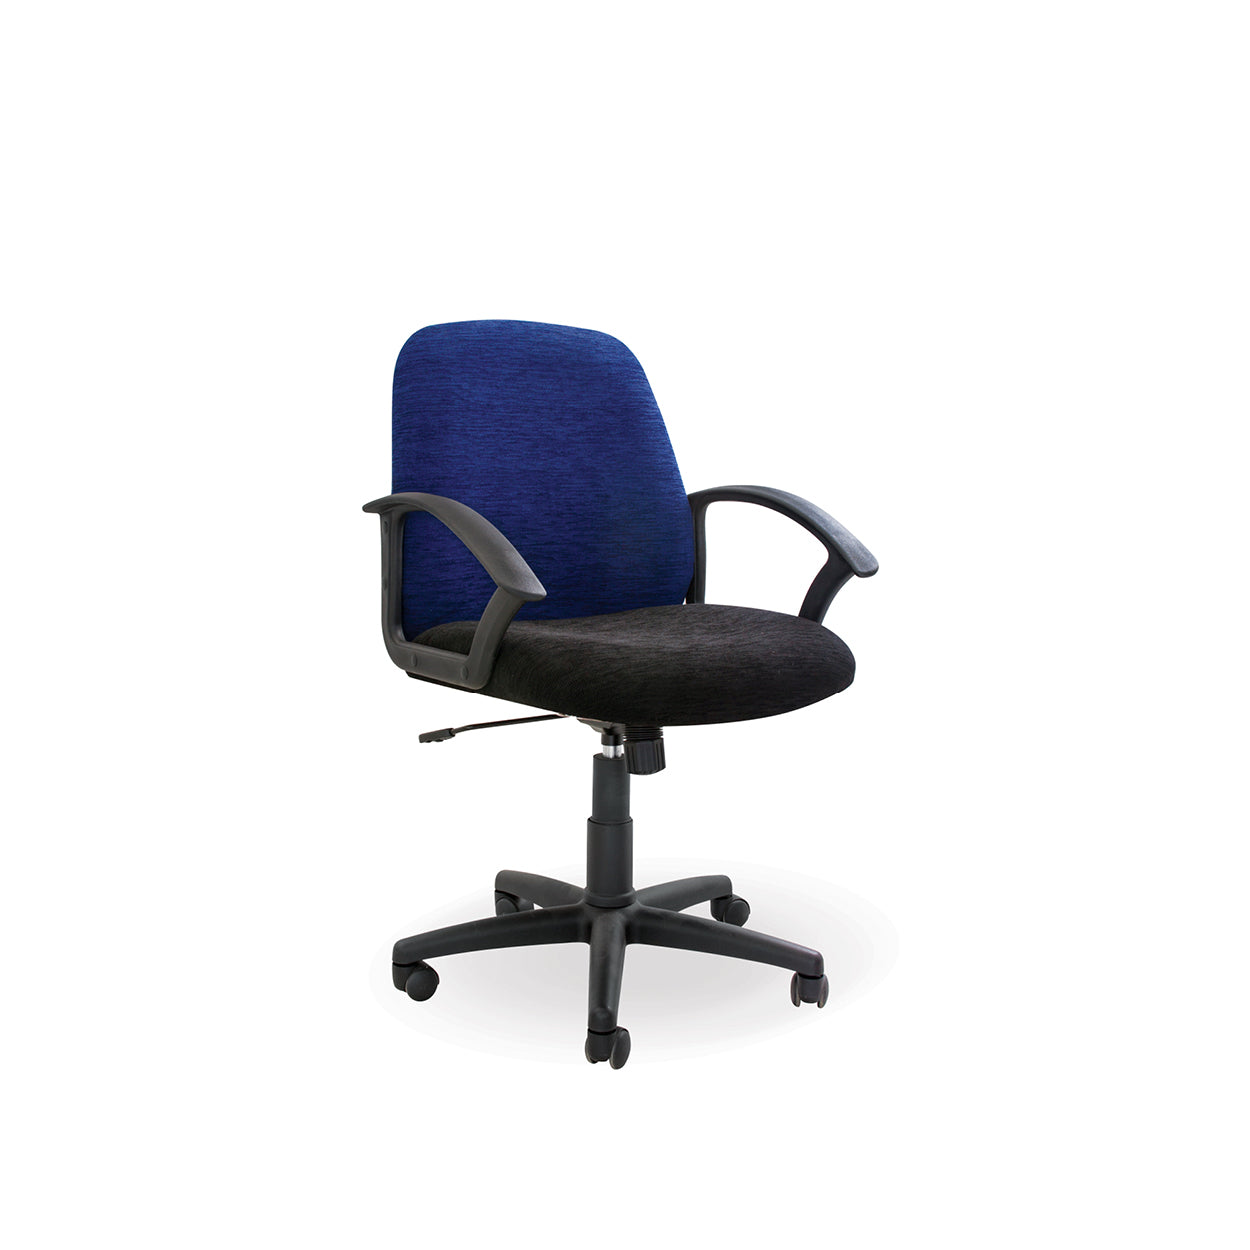 Hedcor Montego mid back office chair